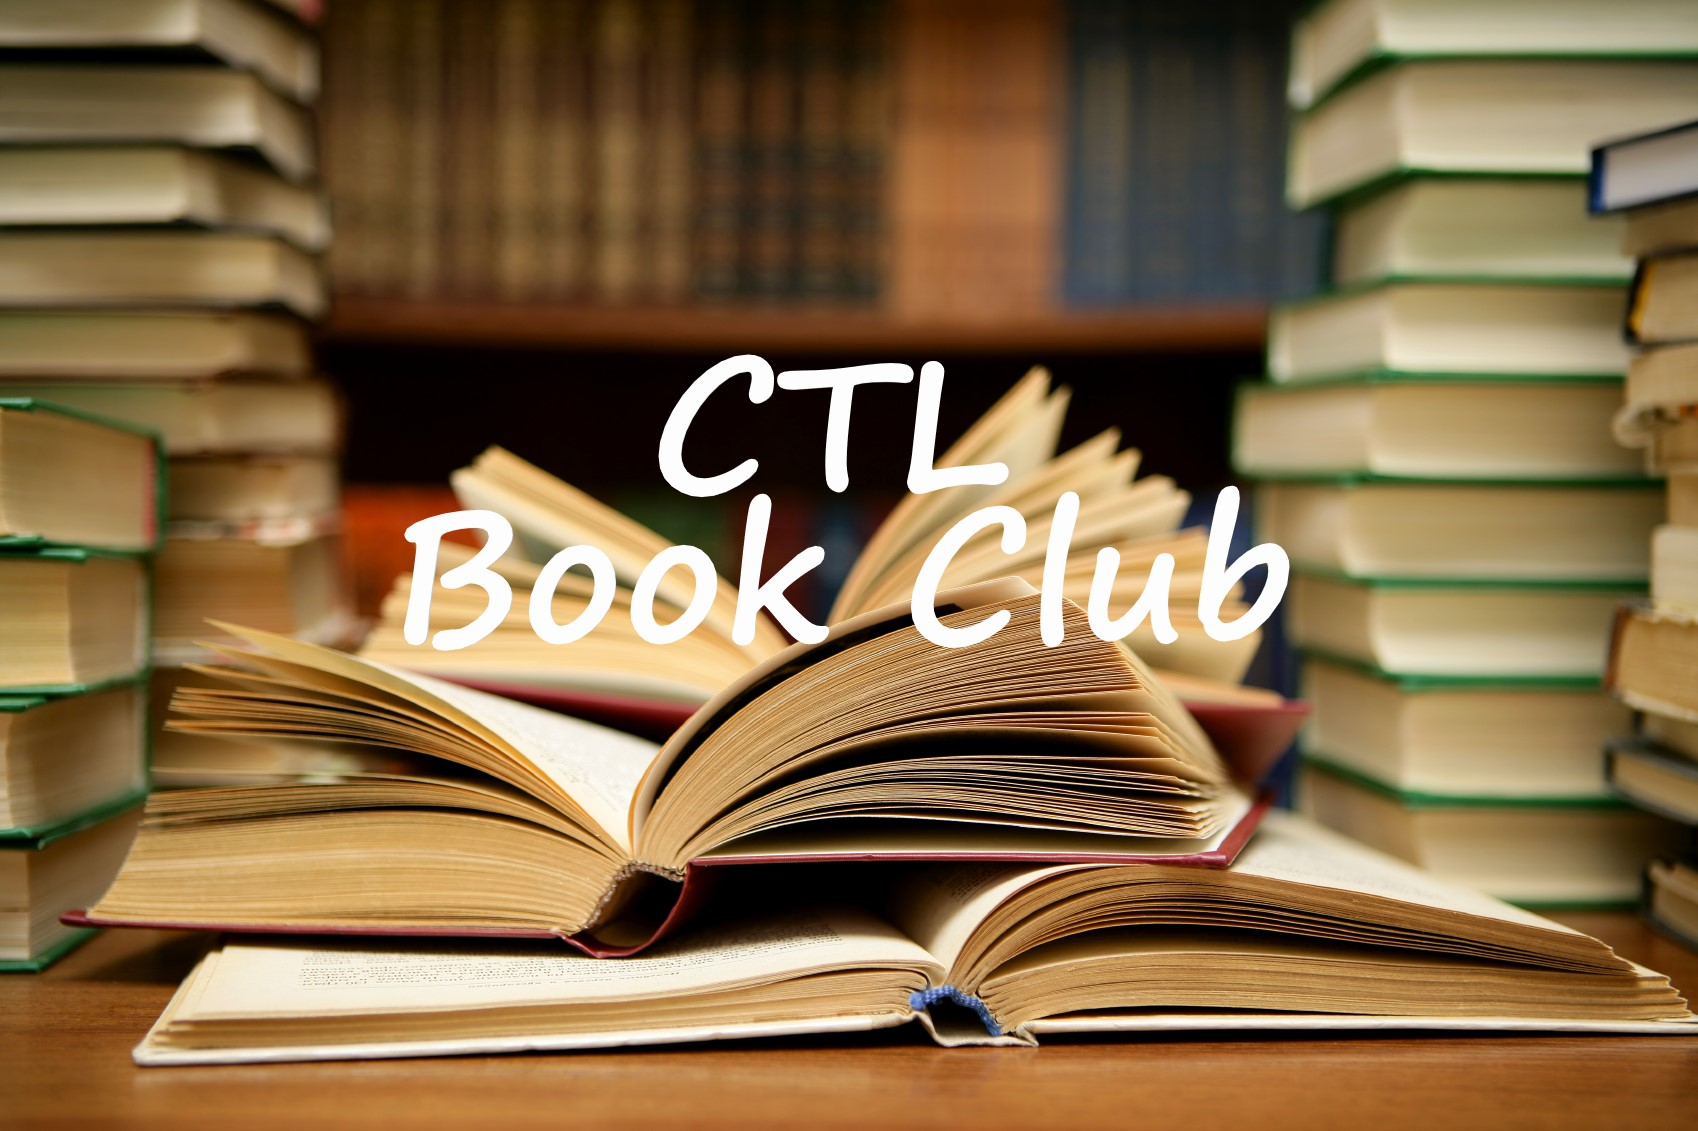 CTL Book Club